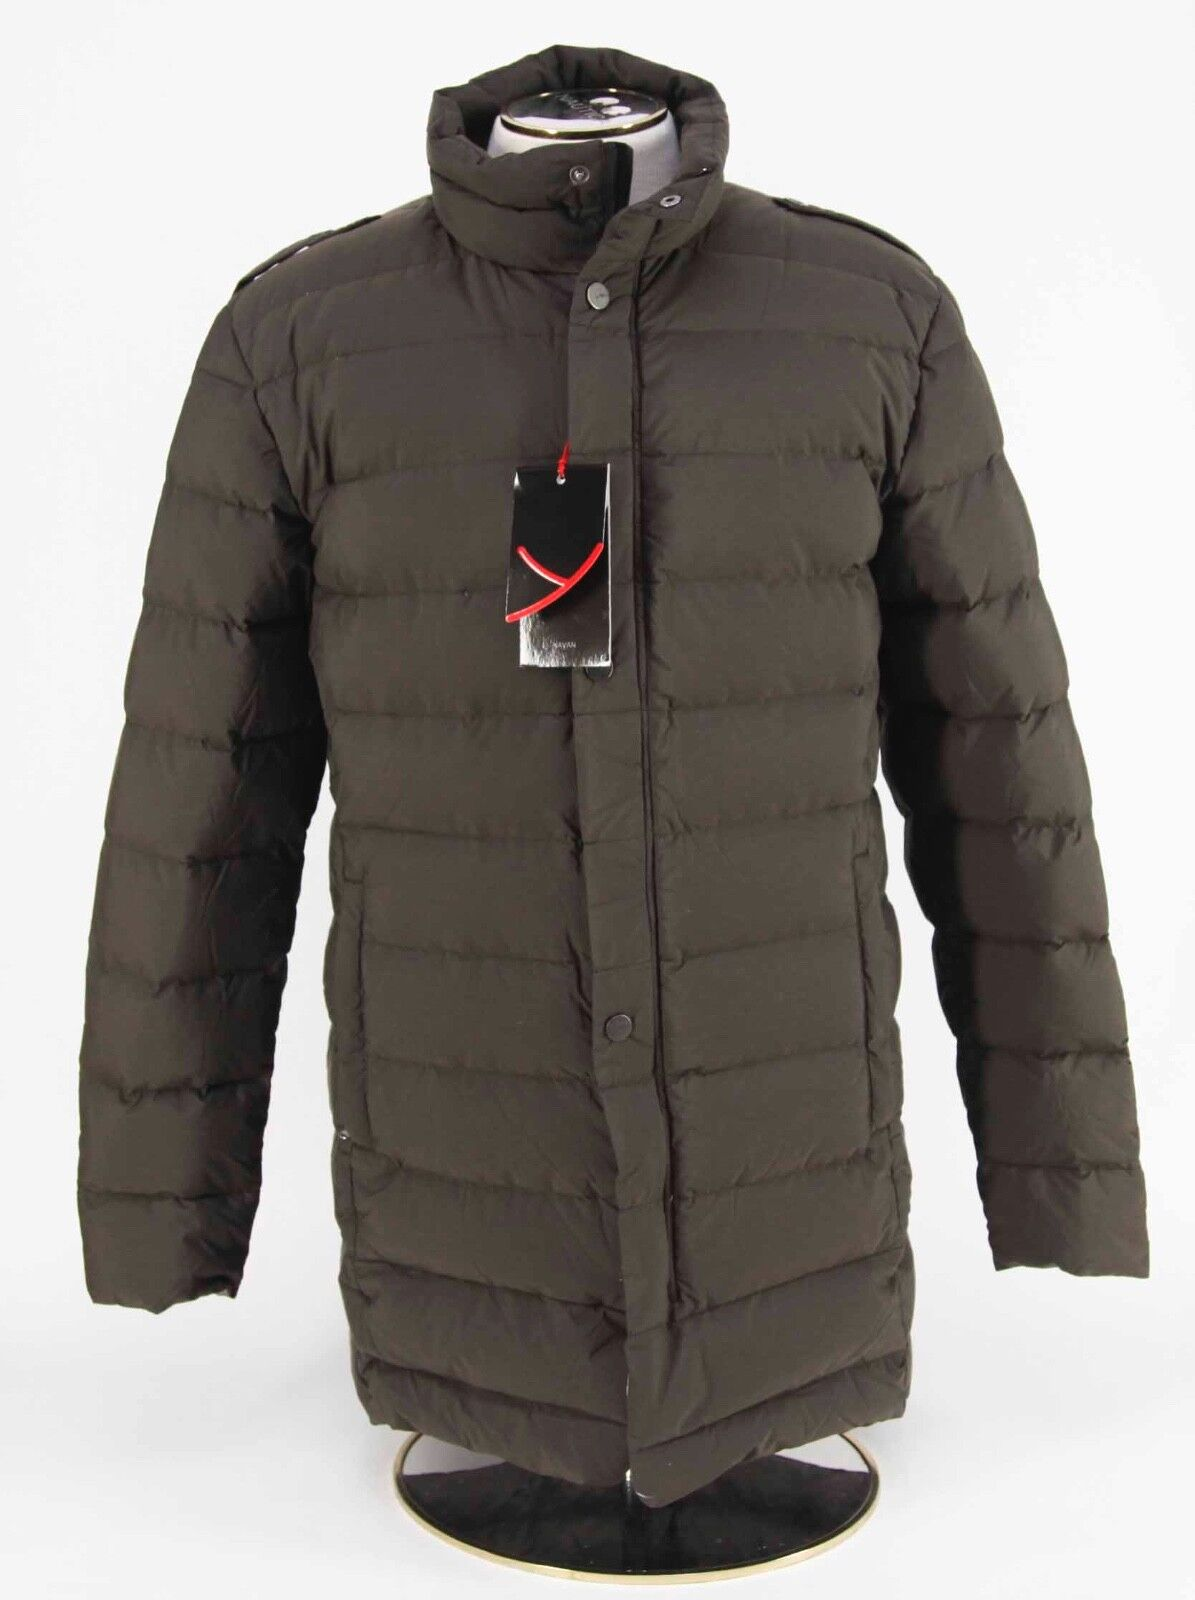 NEW 595 Yeti of Germany 'Navan' Down Puffer Coat in Deep Braun Größes M Or L